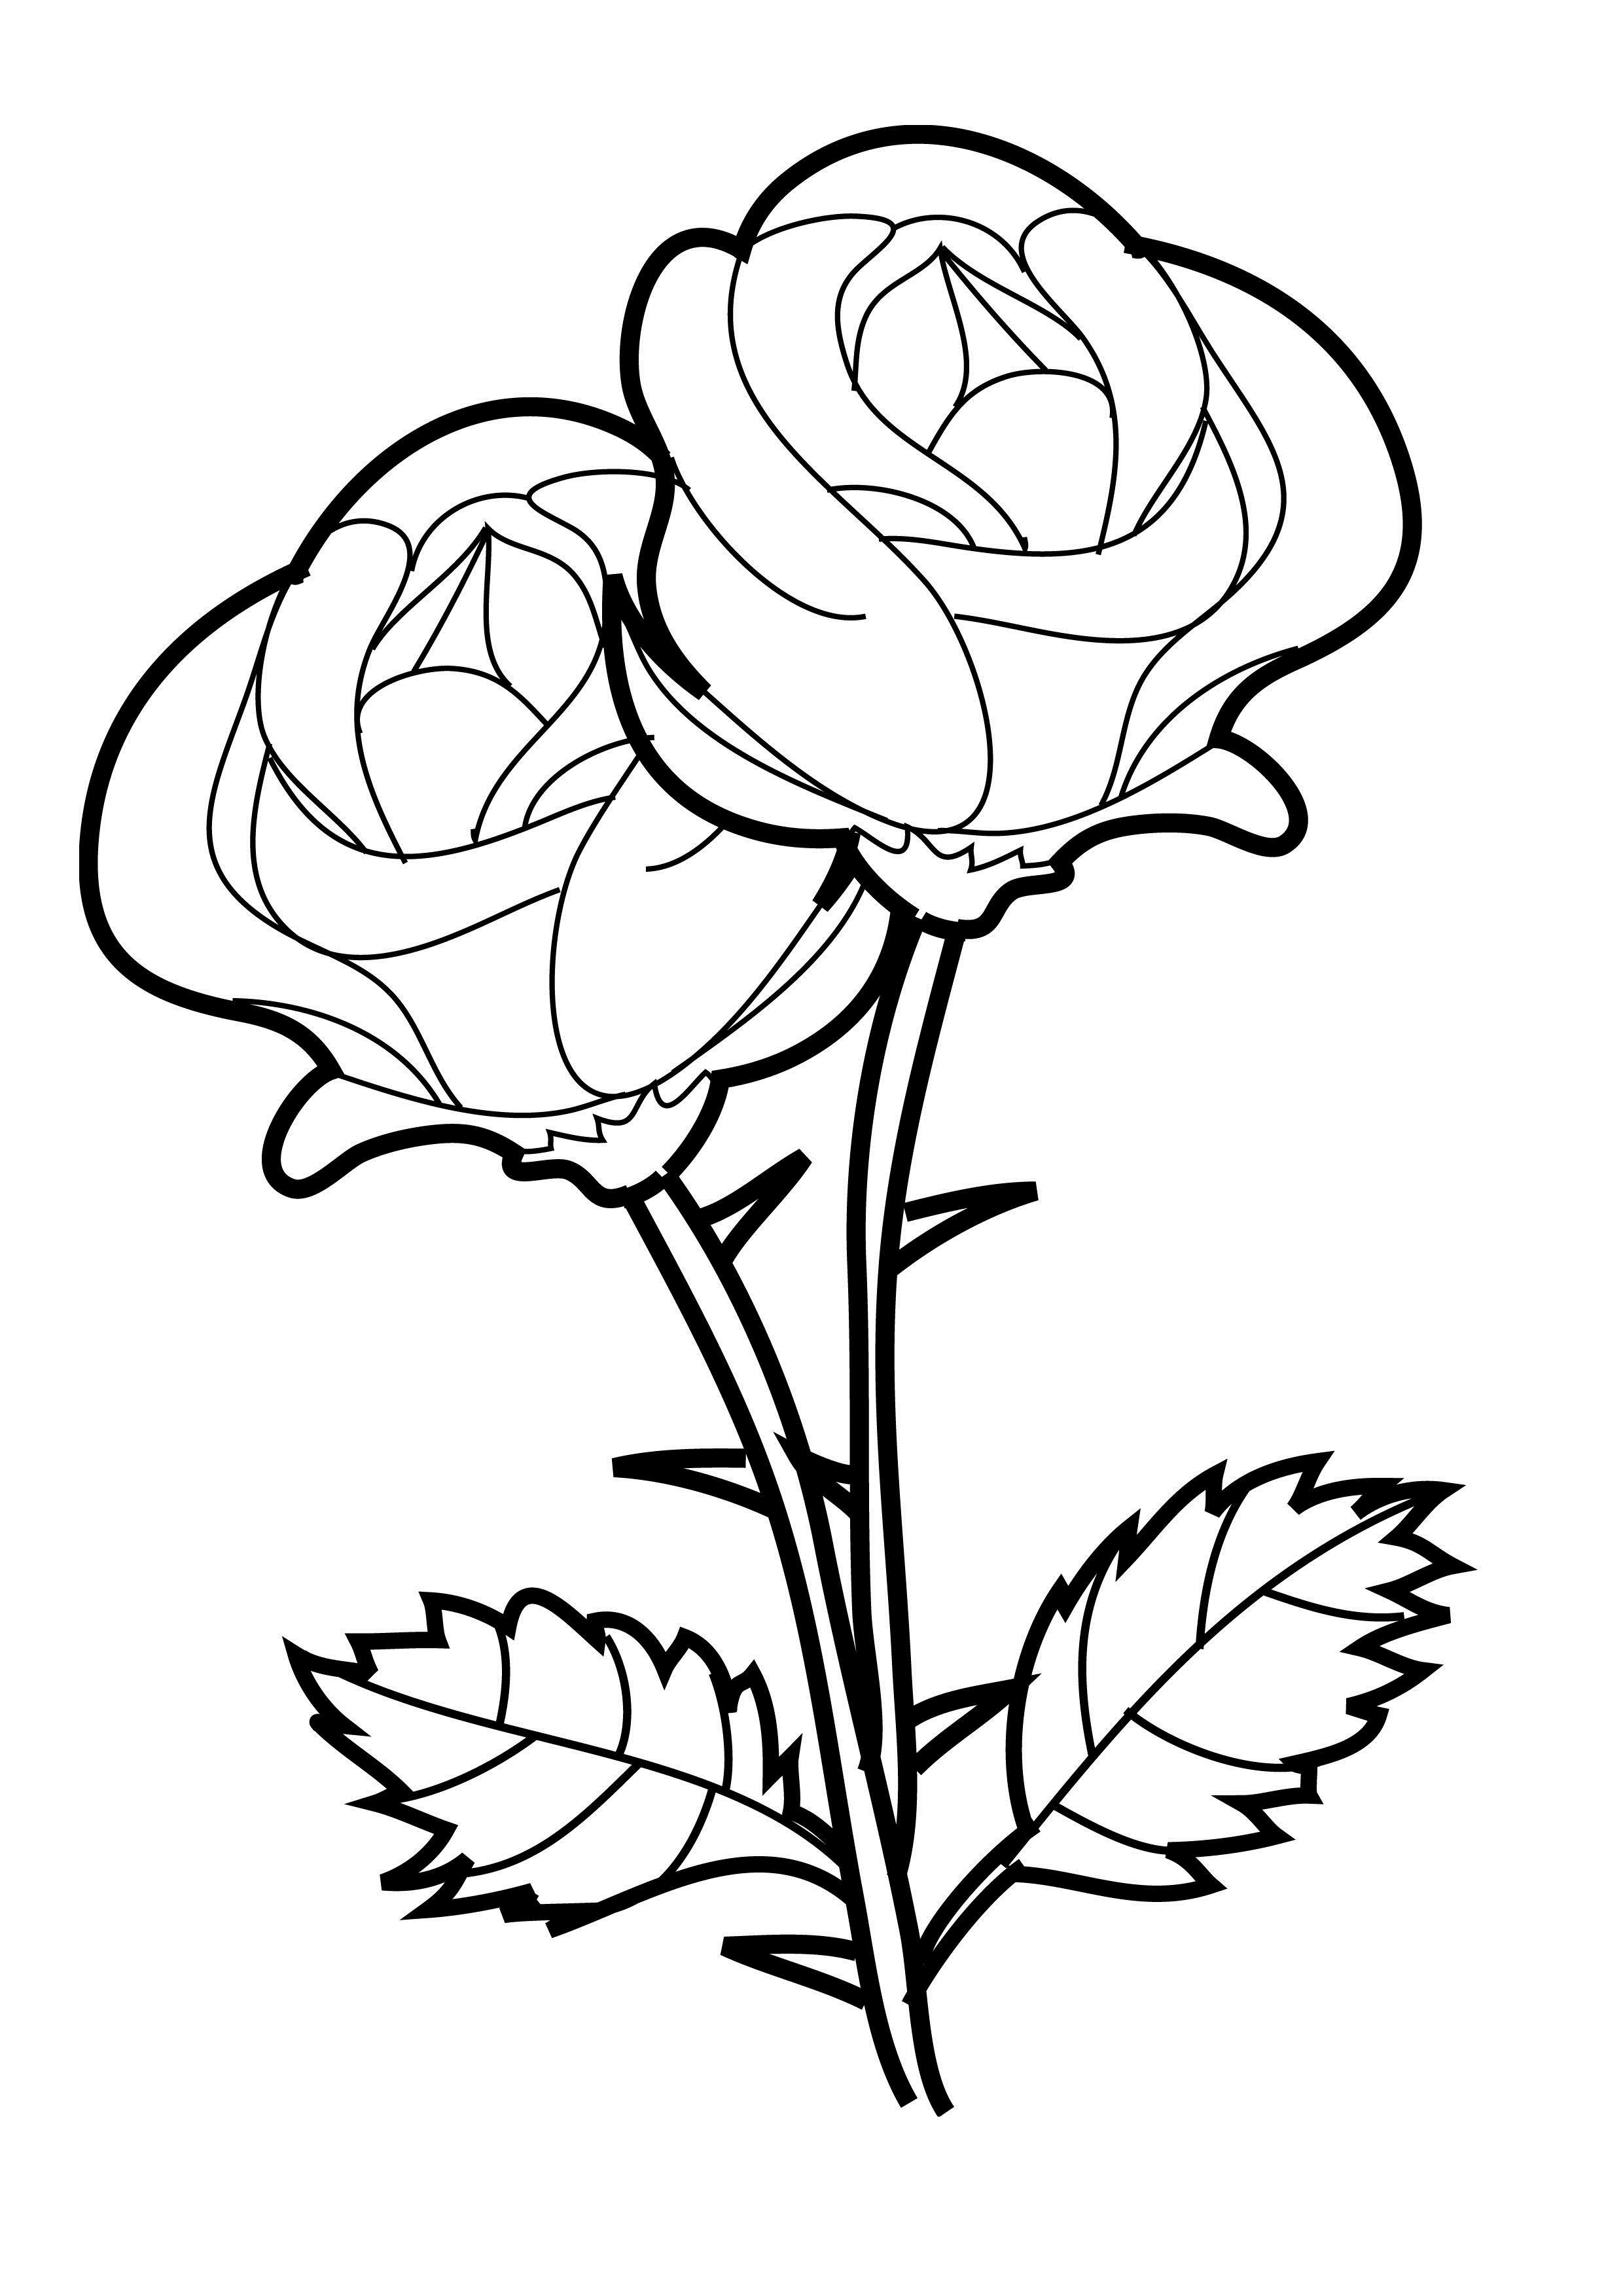 rose coloring book page rose coloring page free coloring pages online coloring rose page book